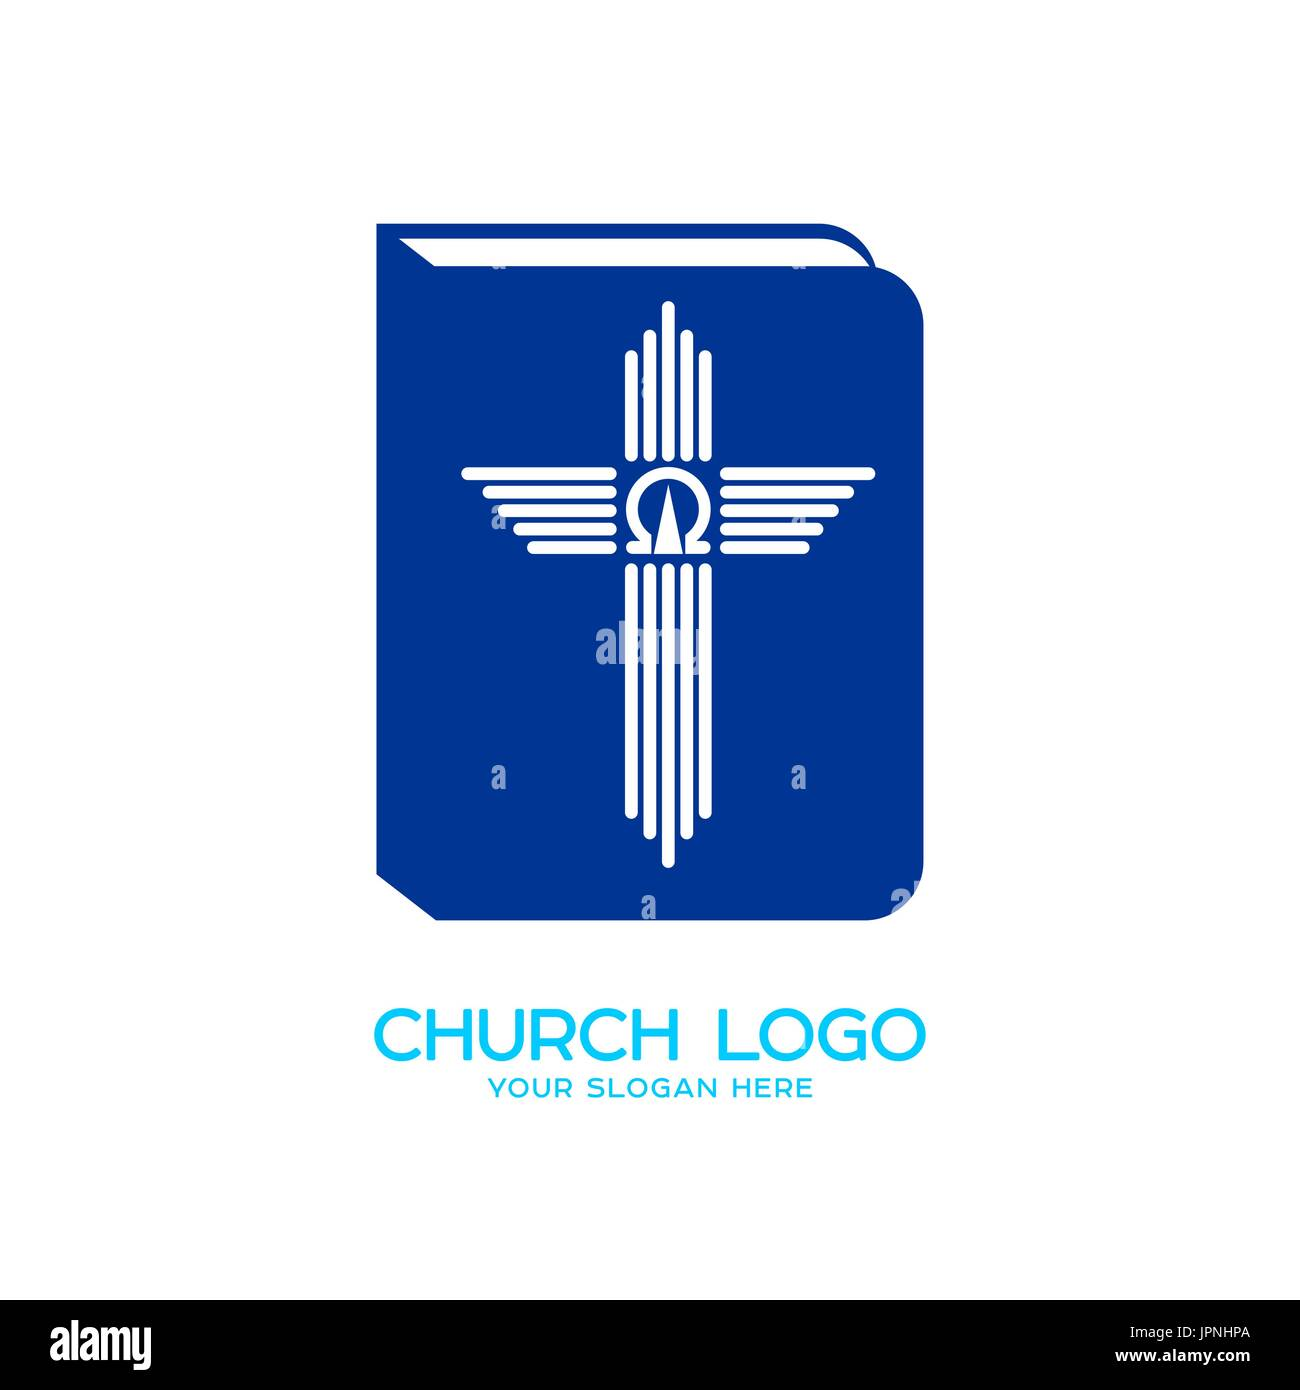 Church logo christian symbols the bible the cross and the church logo christian symbols the bible the cross and the symbols of alpha and omega buycottarizona